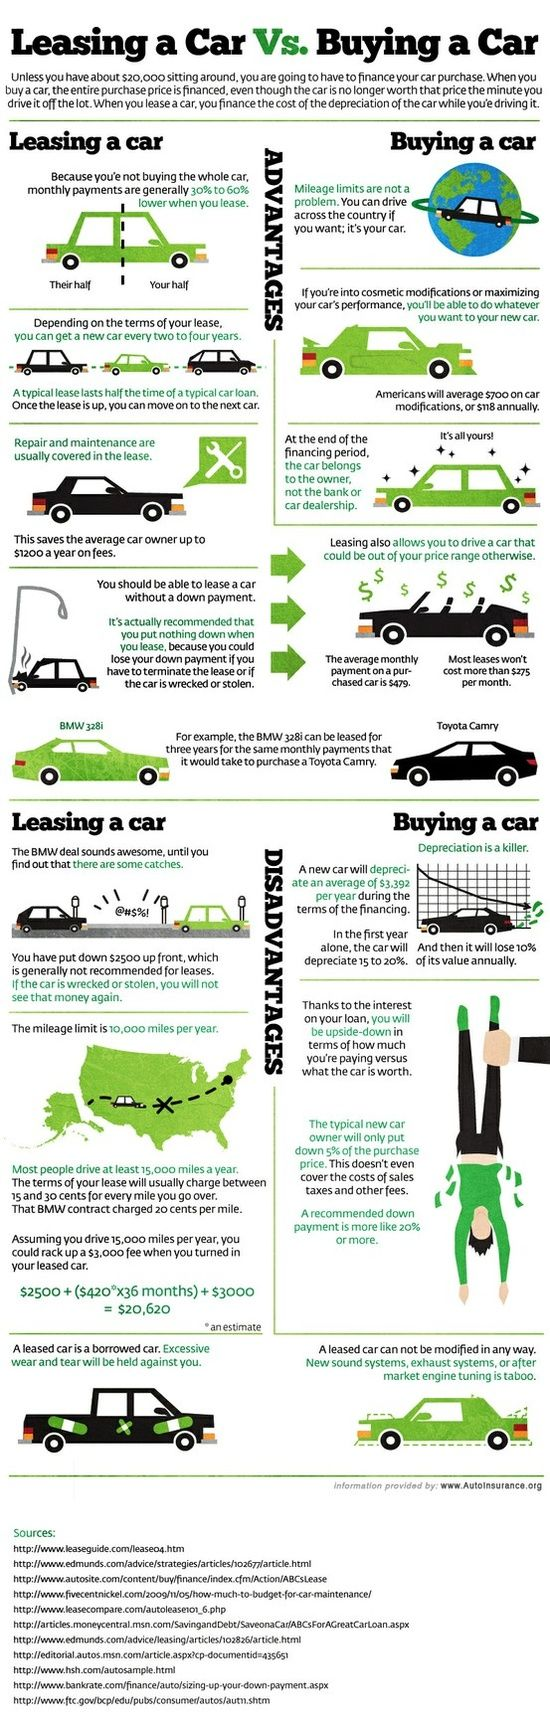 leasing a car vs buying a car infographic